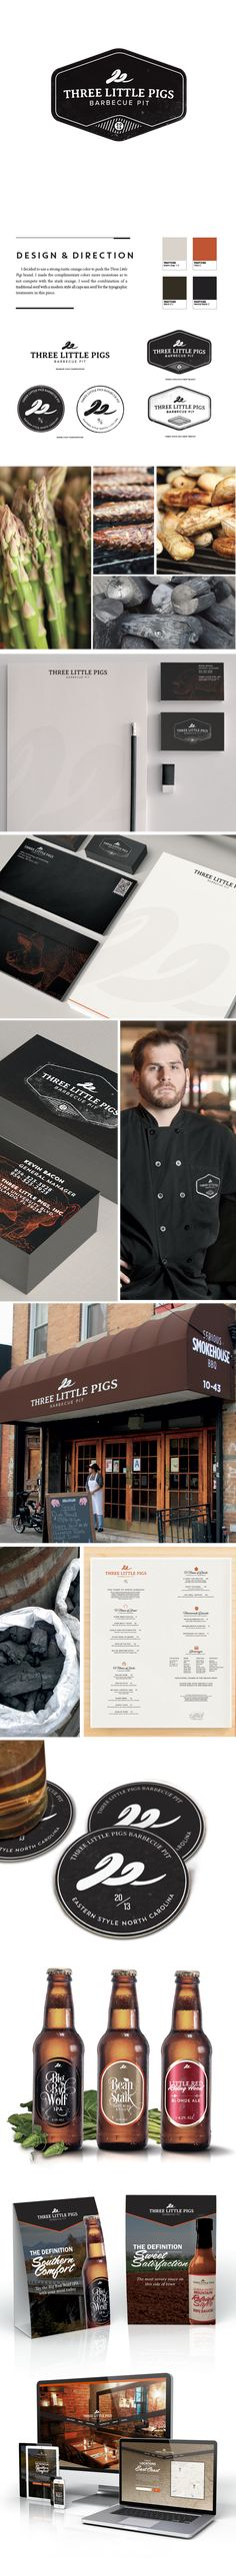 Three Little Pigs Barbecue Pit